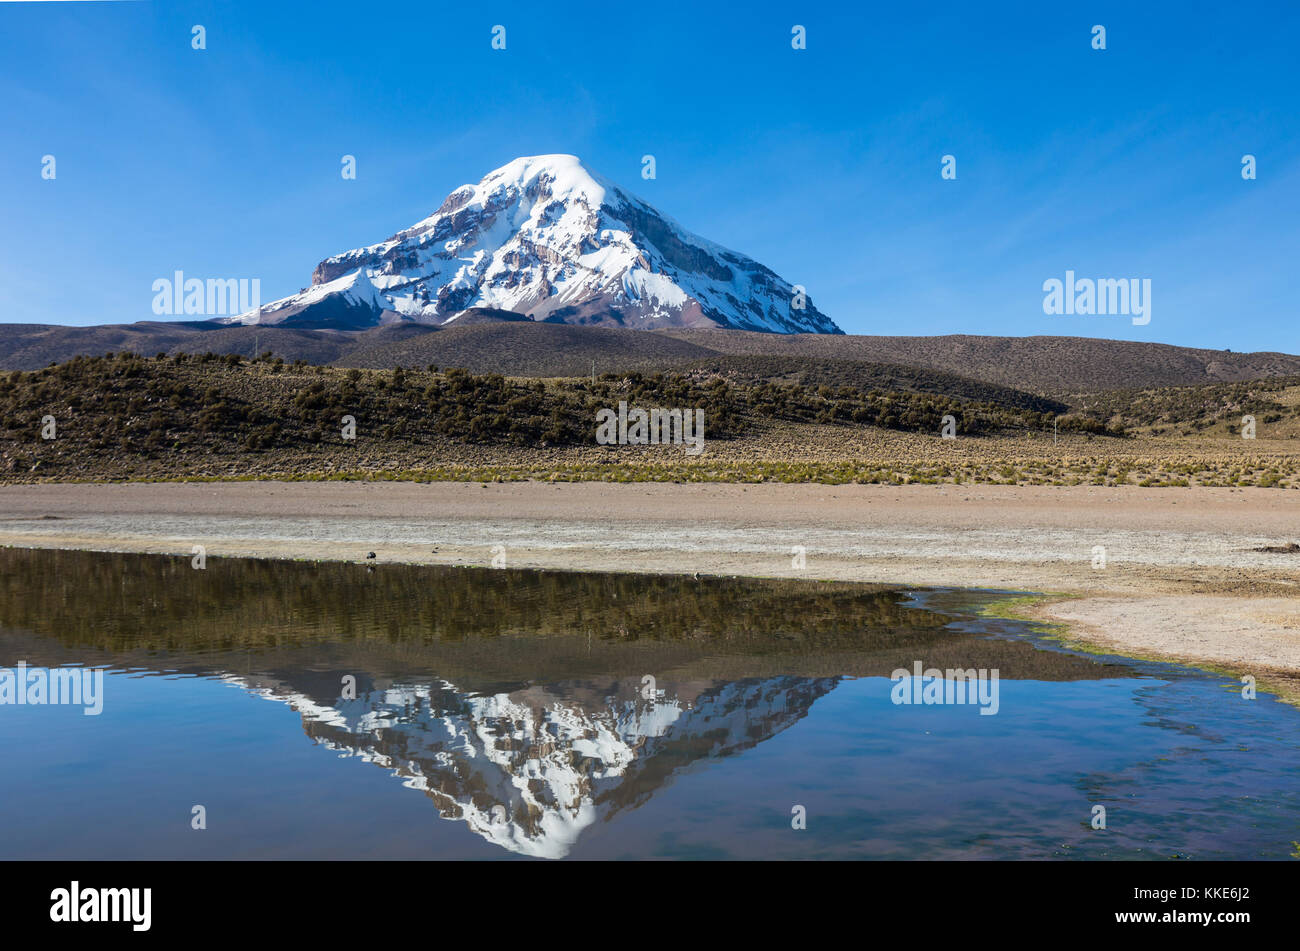 Sajama volcano and lake Huayñacota, in the Natural Park of Sajama. Bolivia - Stock Image